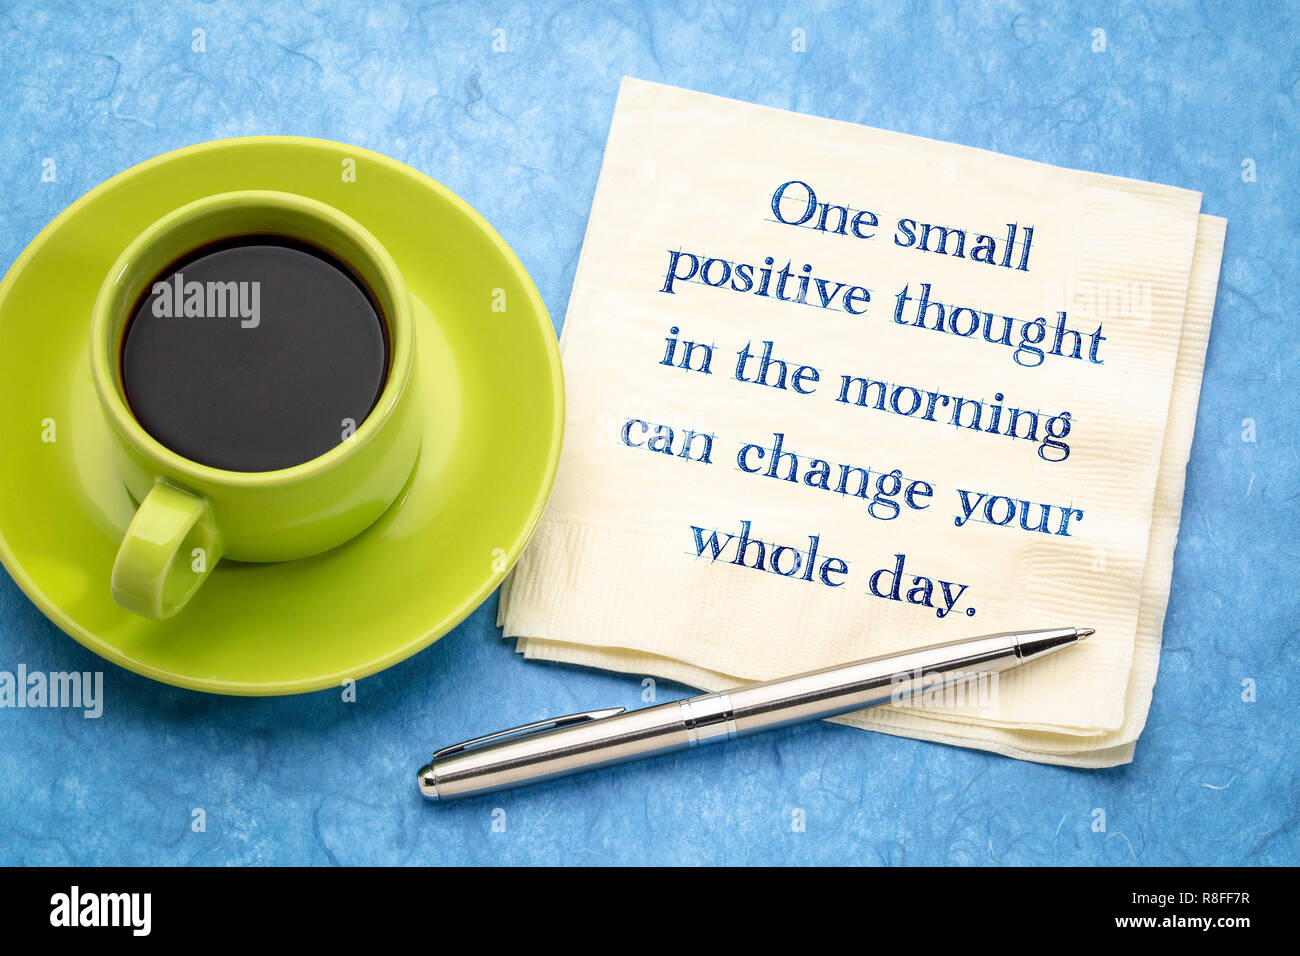 One Small Positive Thought In The Morning Can Change Your Whole Day Inspirational Handwriting On A Napkin With A Cup Of Coffee Stock Photo Alamy